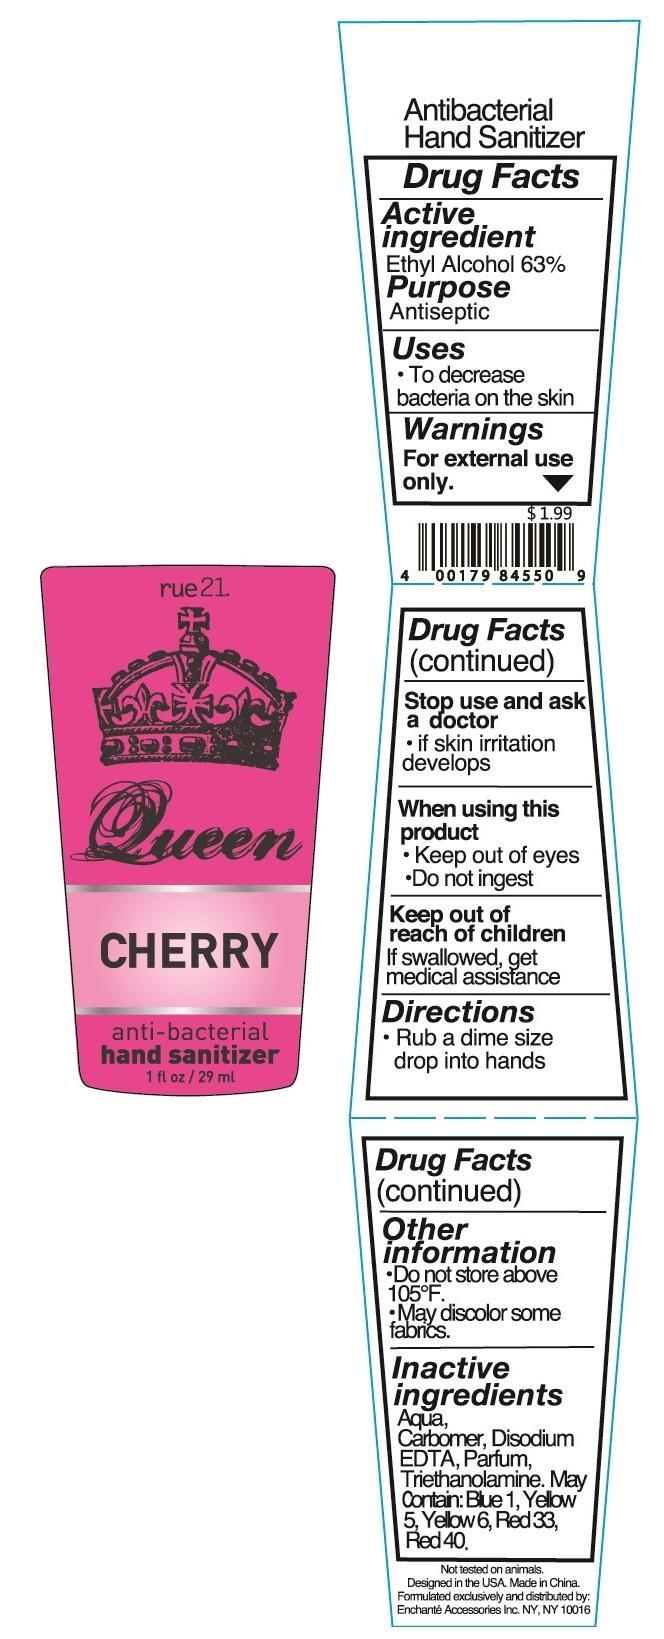 Rue 21 Queen Cherry Anti Bacterial Hand Sanitizer (Alcohol) Liquid [Enchante Accessories Inc. ]